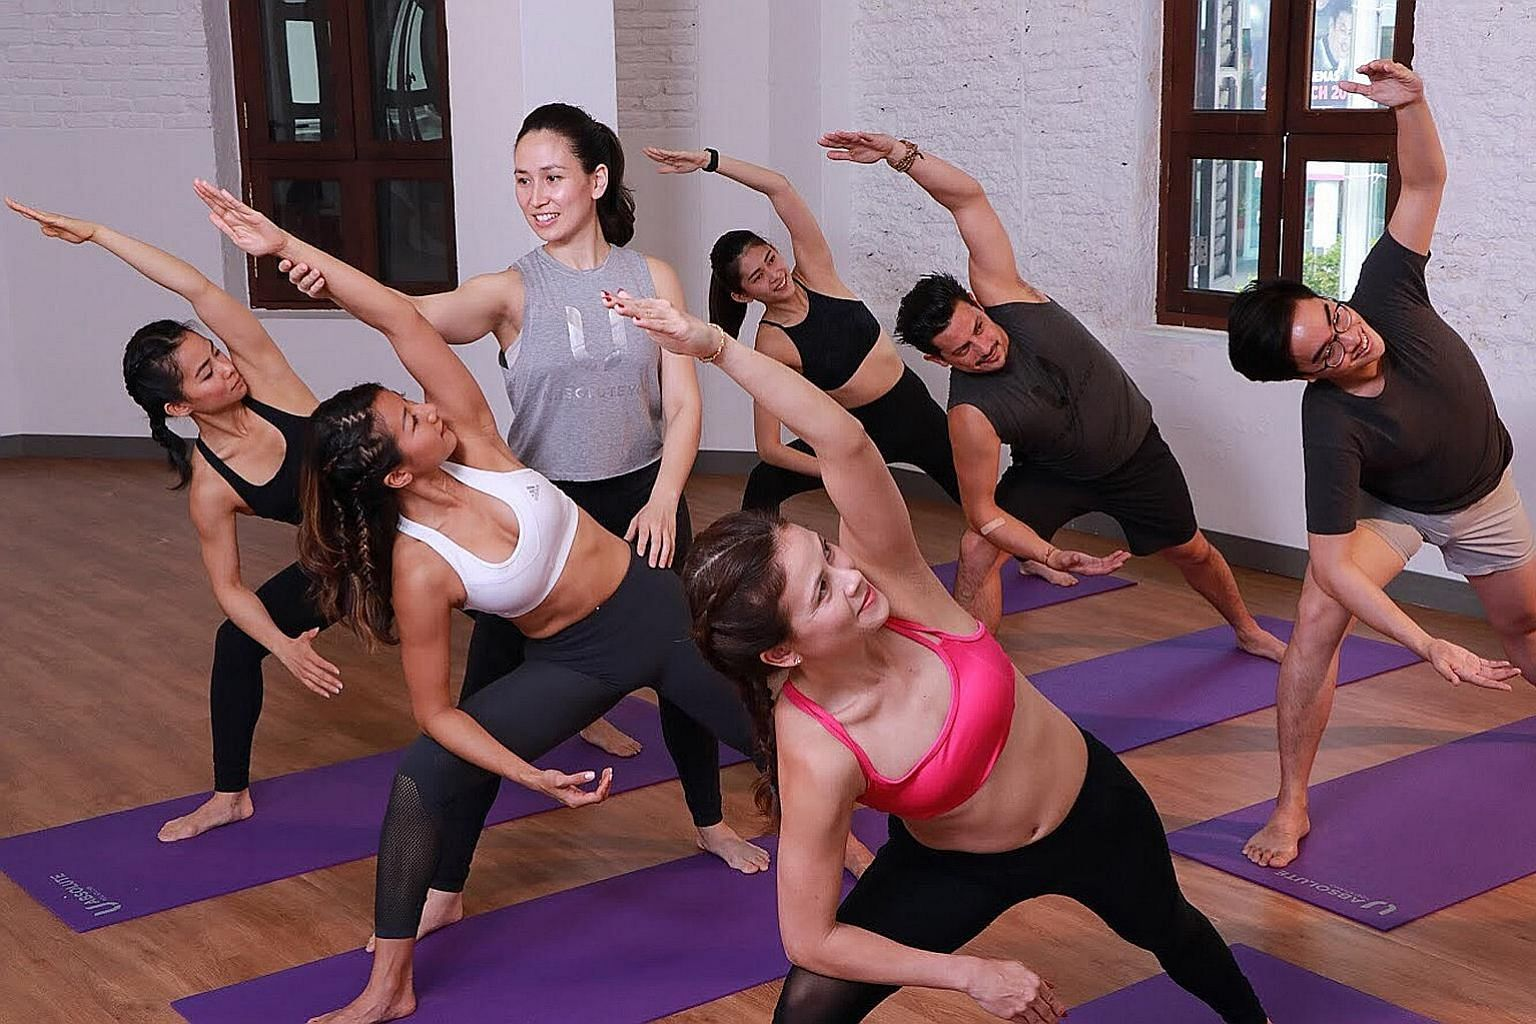 Michael Yassa, senior co-author of the study, says memory power can be improved even with an easy session of yoga or tai chi.